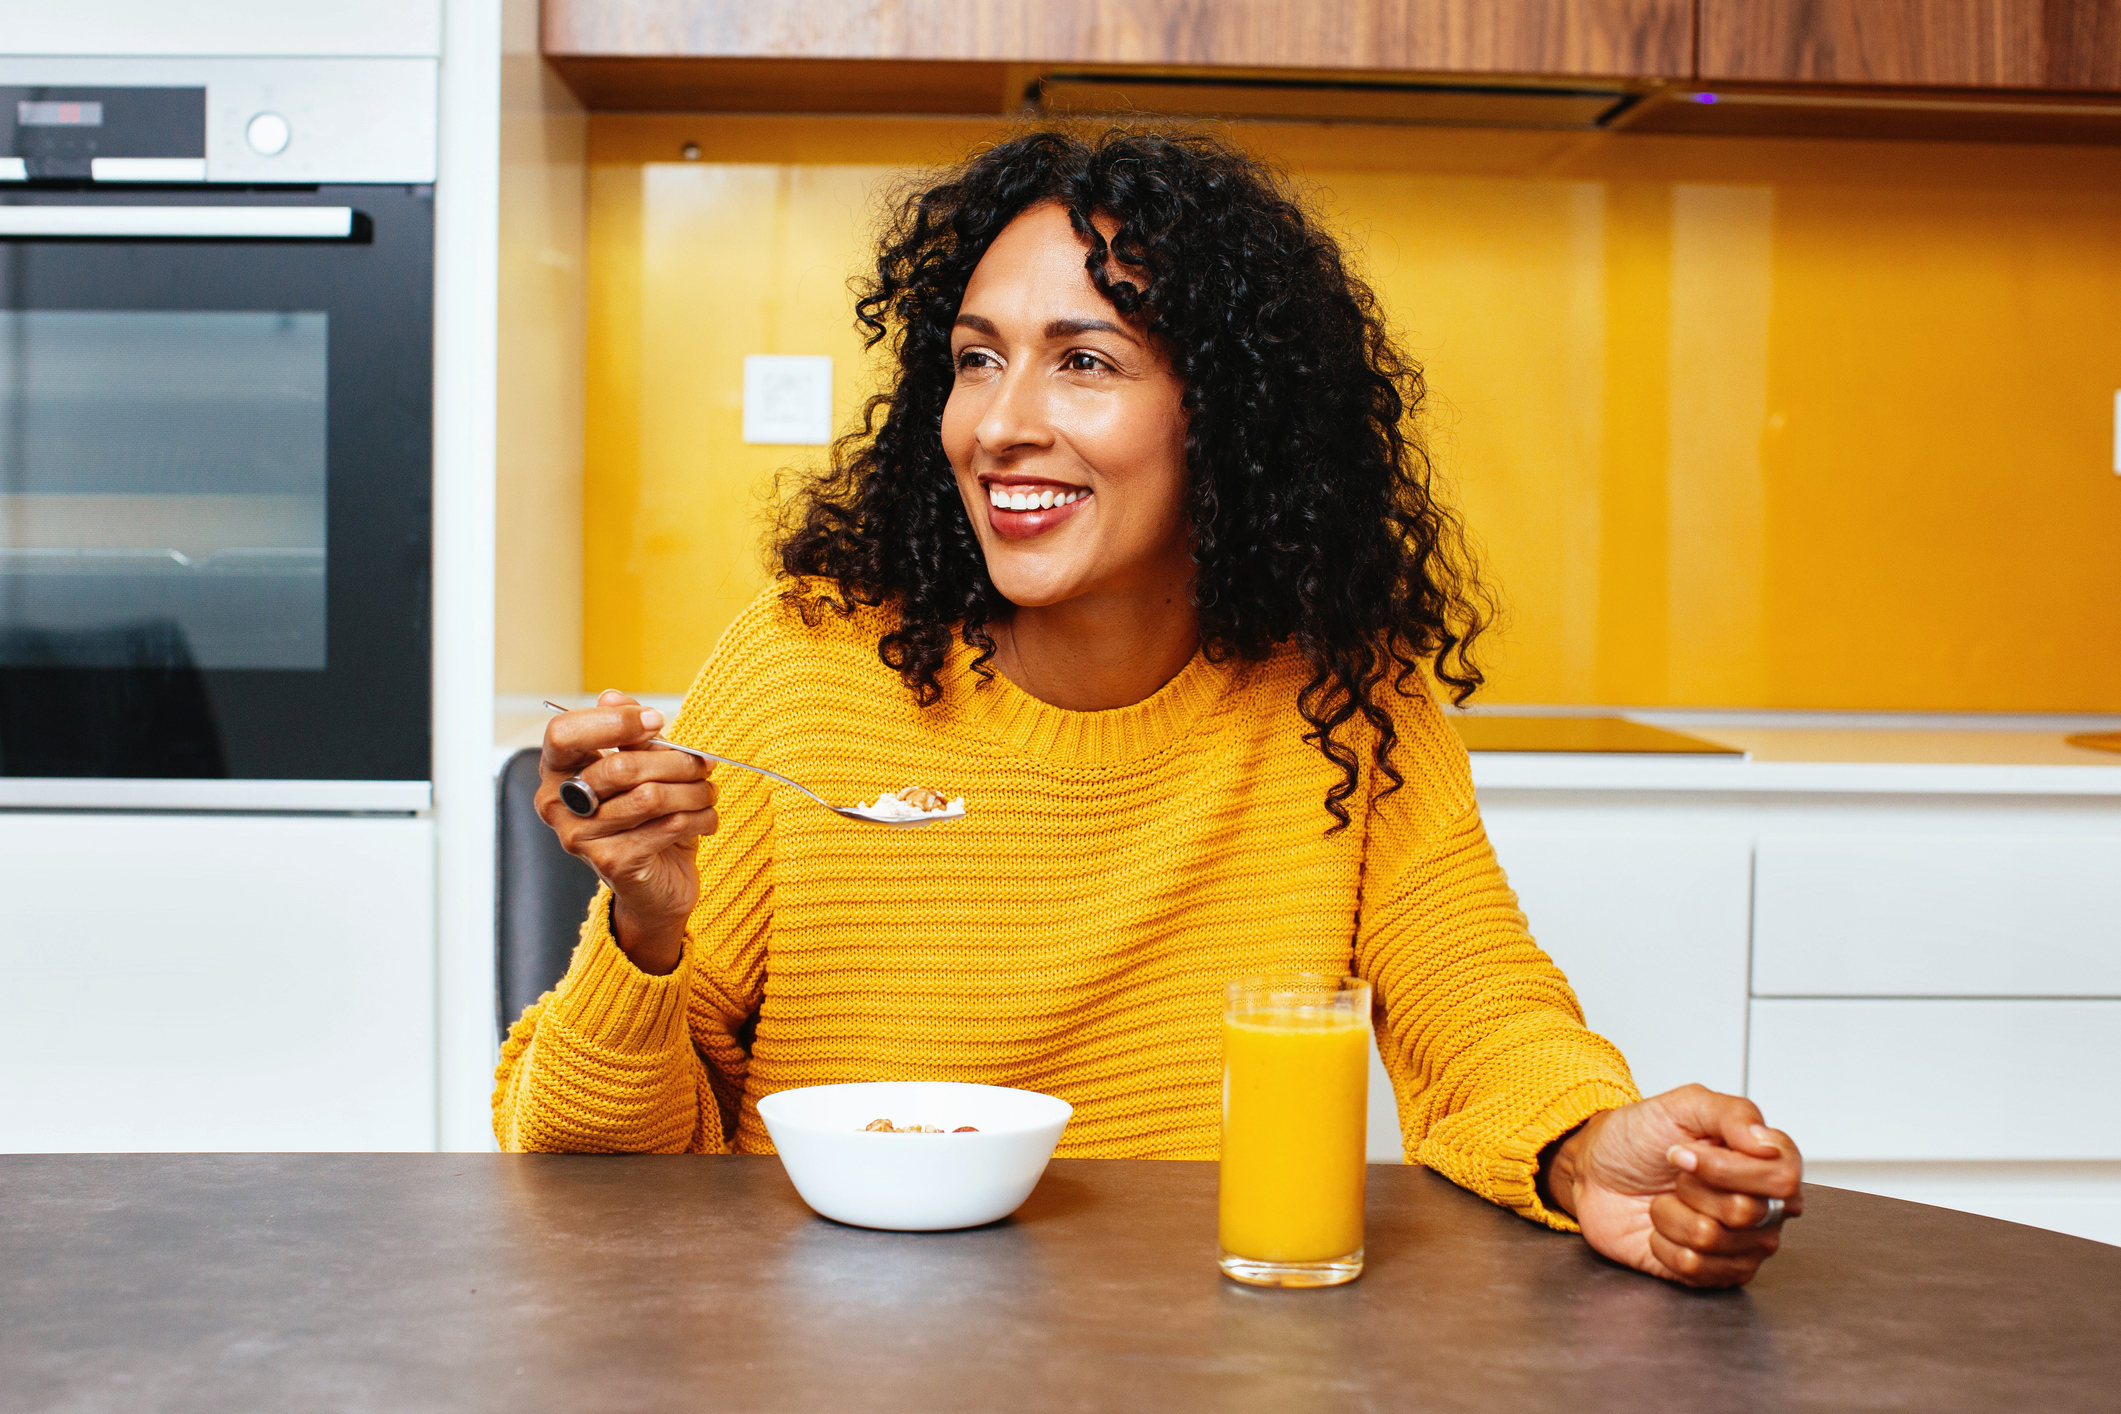 Breakfast timing can make all the difference in blood sugar levels